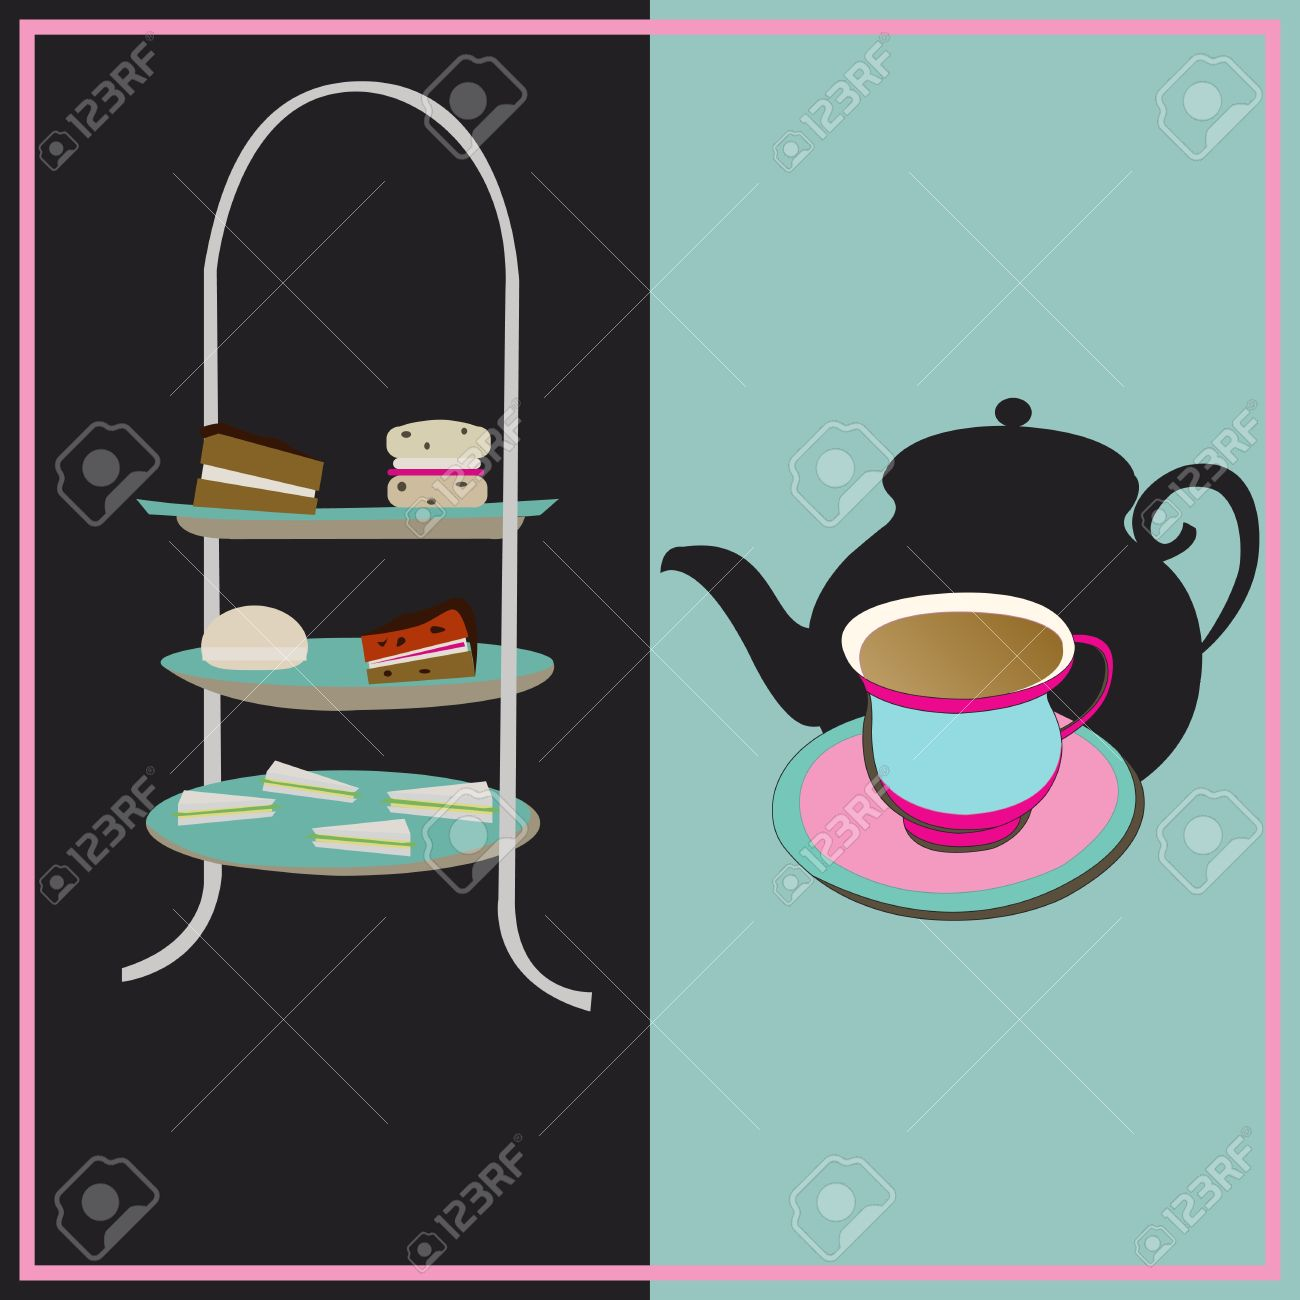 Elegant tea party invitation template with teacups cartoon vector - Afternoon Tea Afternoon Tea Vector Retro Background With A Cake Stand And A